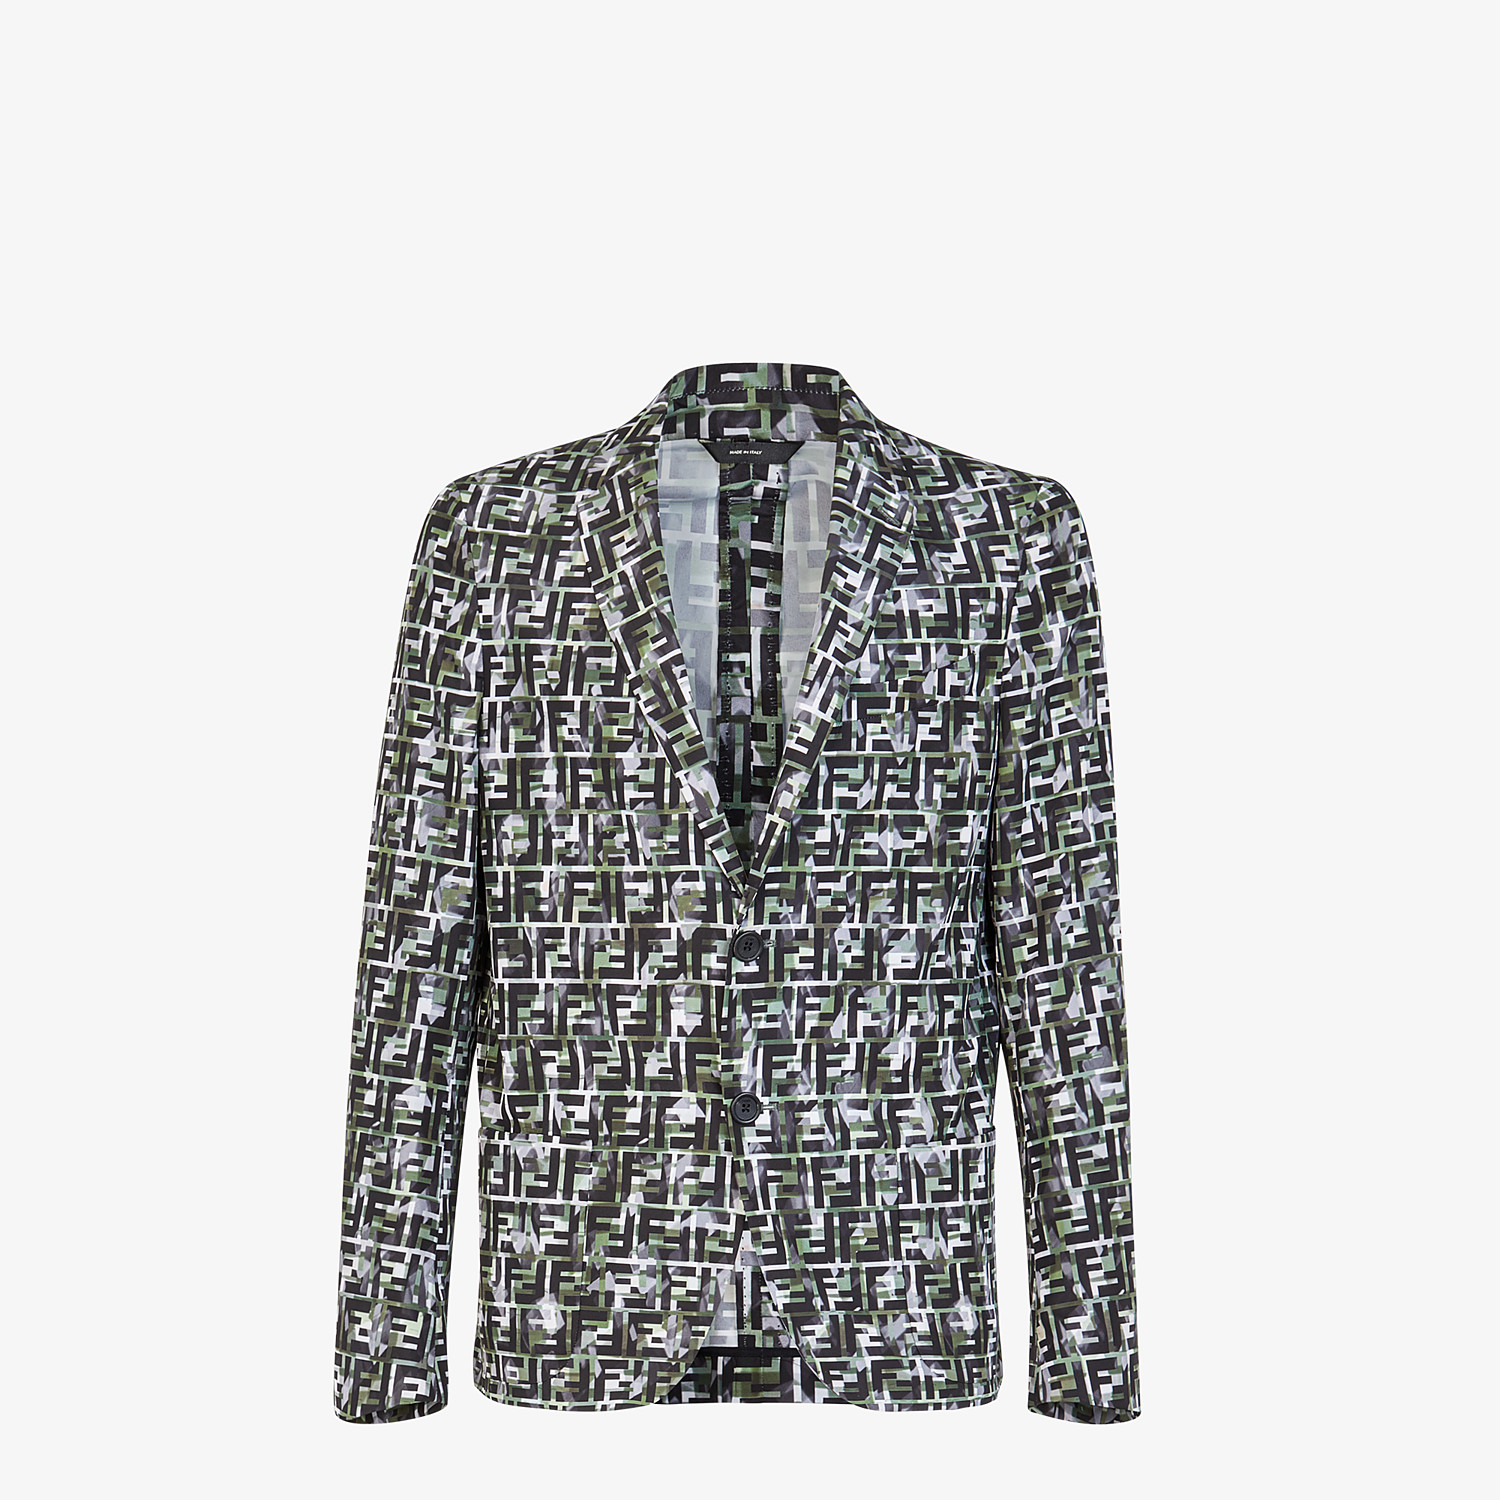 FENDI JACKET - Multicolor nylon blazer - view 1 detail